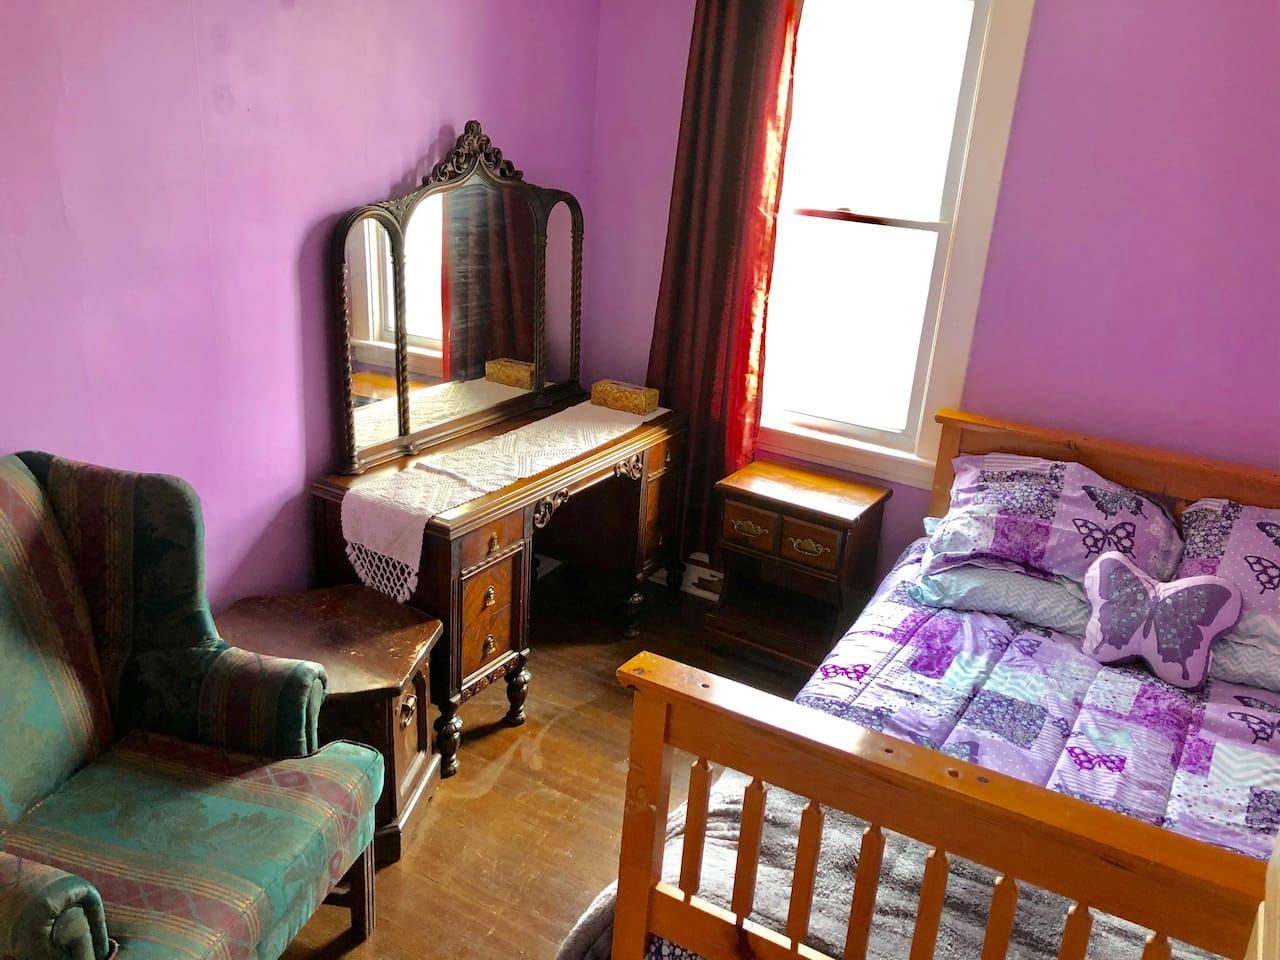 Freshly painted, brand new linens and a comfy chair what more could you ask for?